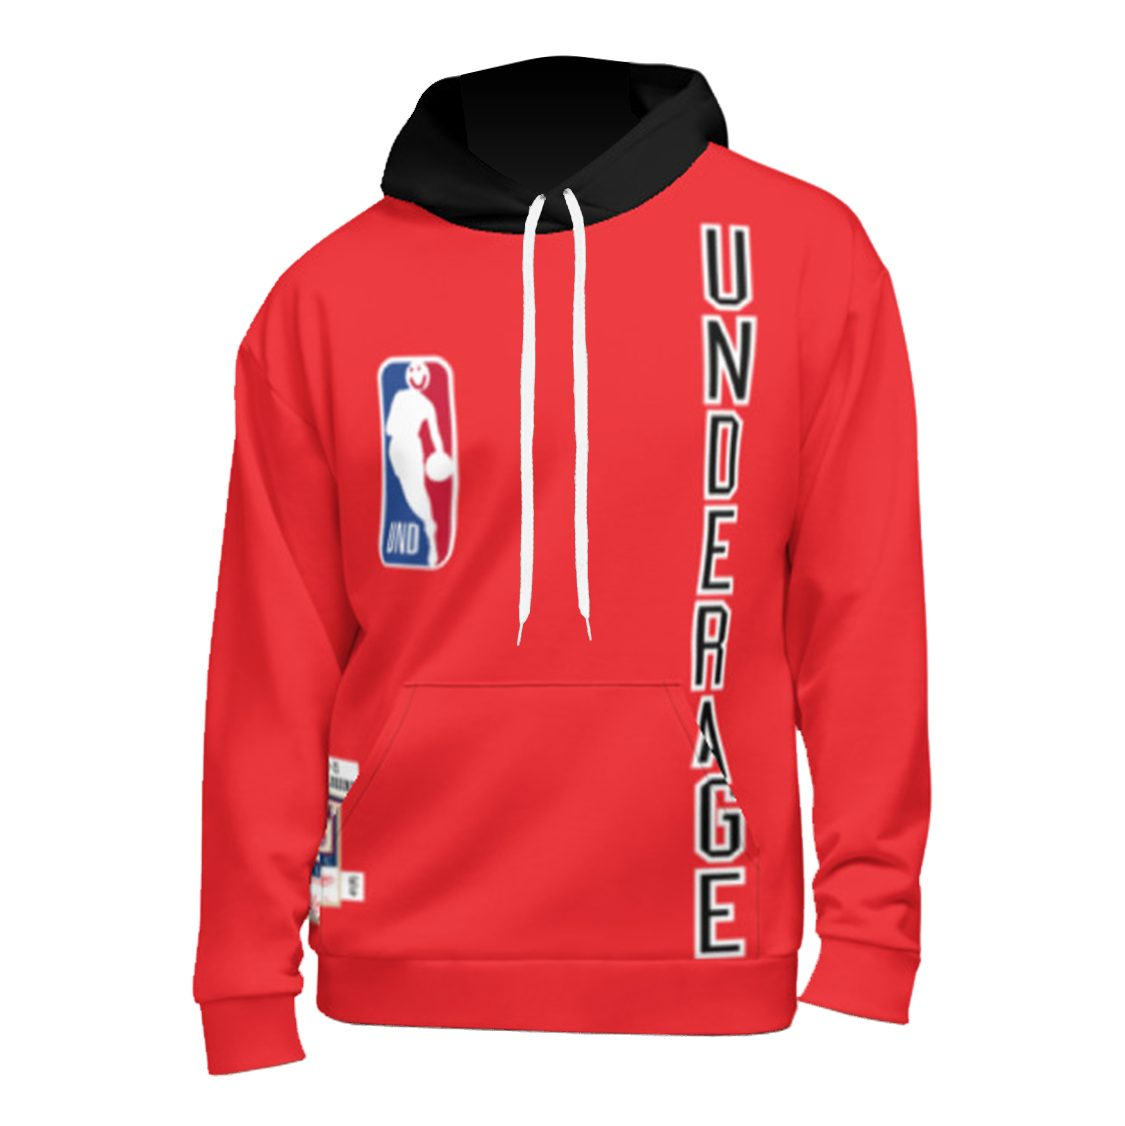 Underage long time classics premiere pullover hoodie red product front